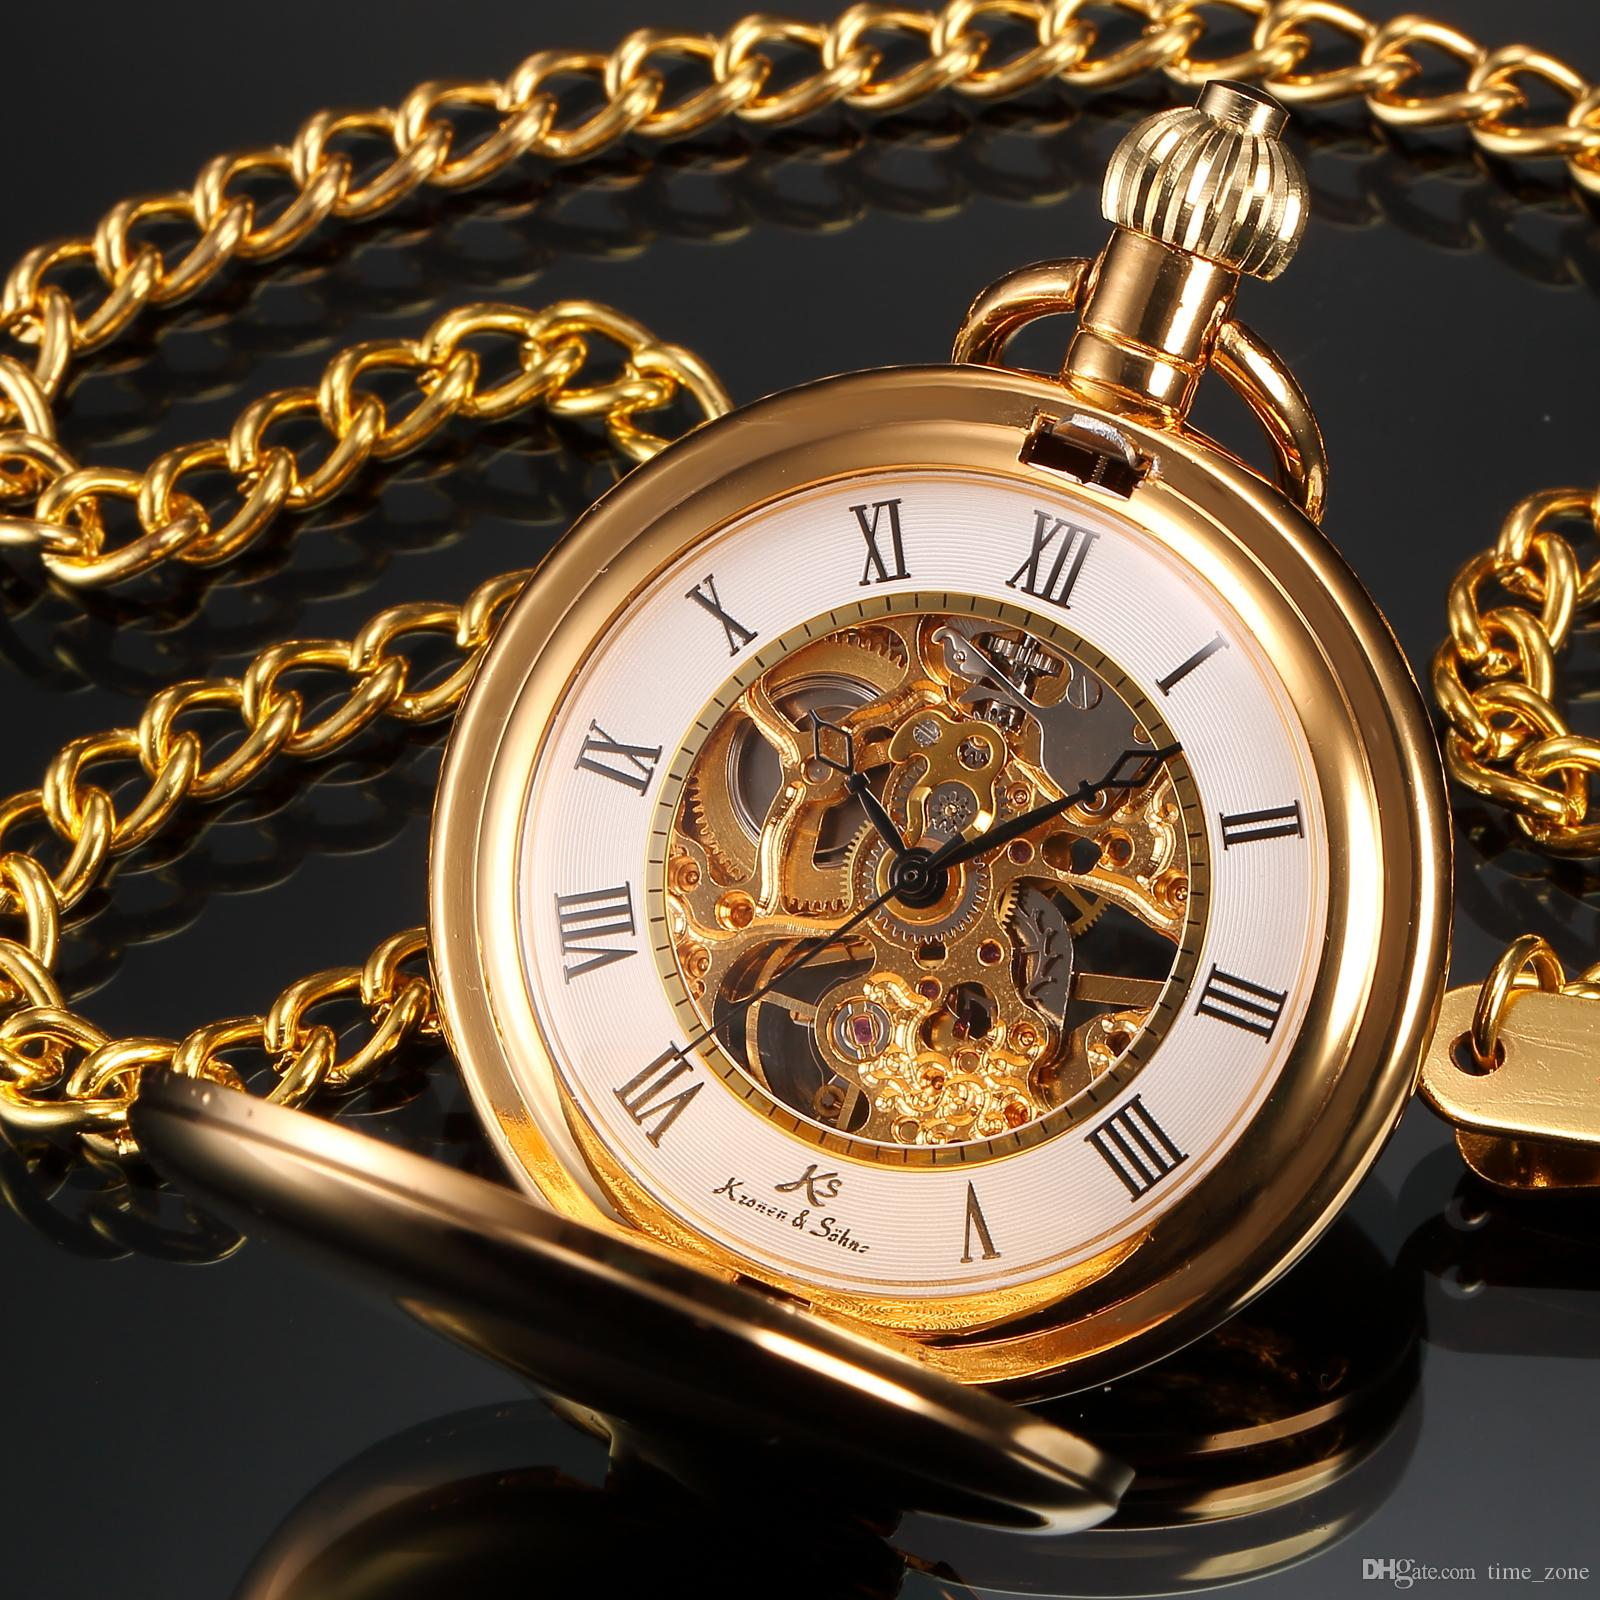 Mens pocket watches with chain images mens gold pocket watches gifts - Ks Pocket Watch Golden Best Luxury Watch Roman Numbers Golden Alloy Case Mechanical Handwinding Men S Pocket Watch Ksp008